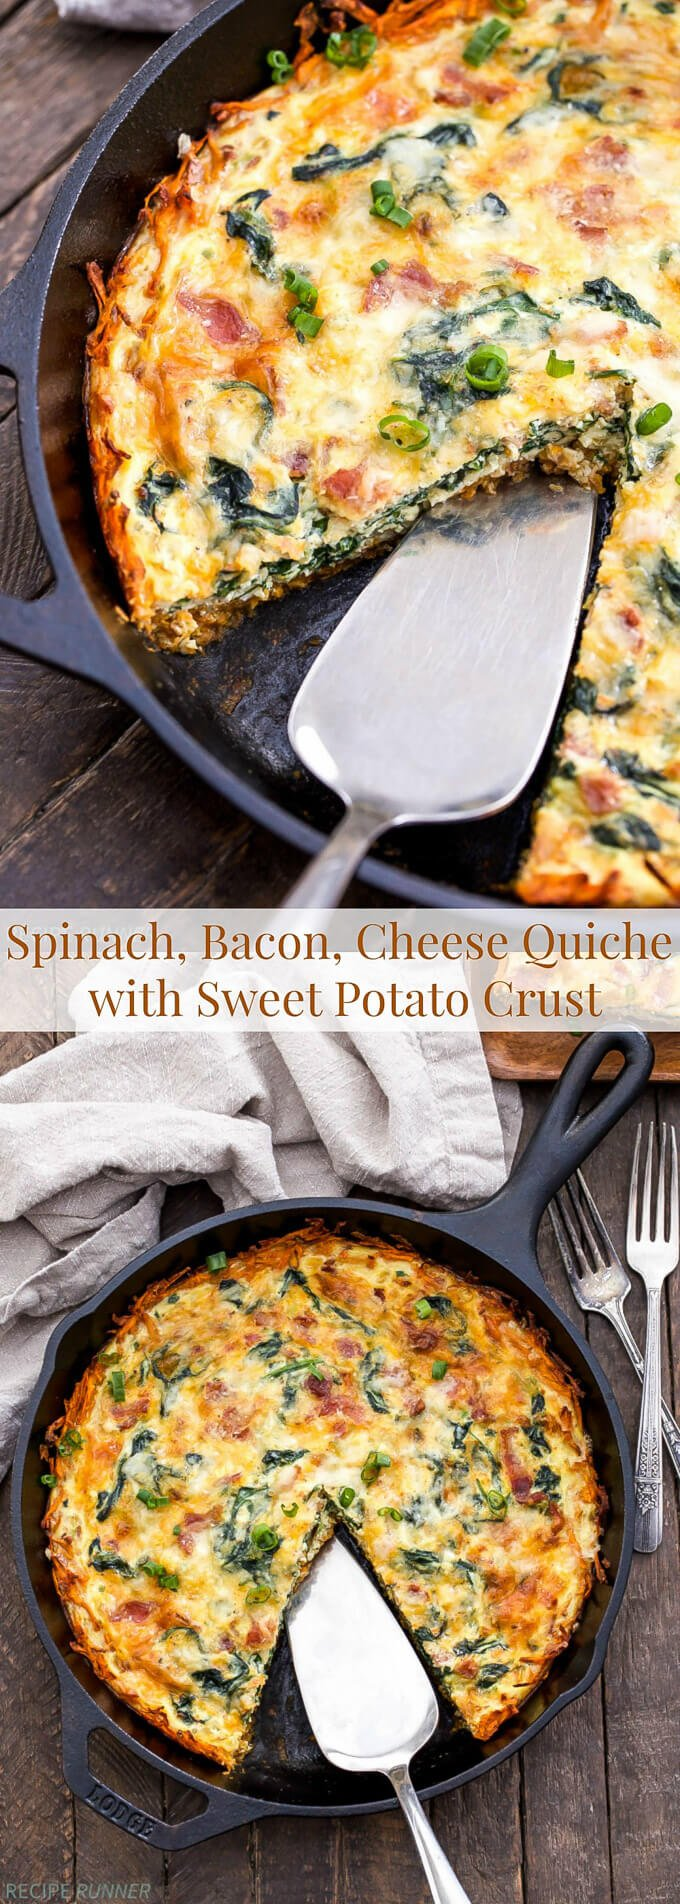 Spinach Bacon Cheese Quiche With Sweet Potato Crust Recipe Runner